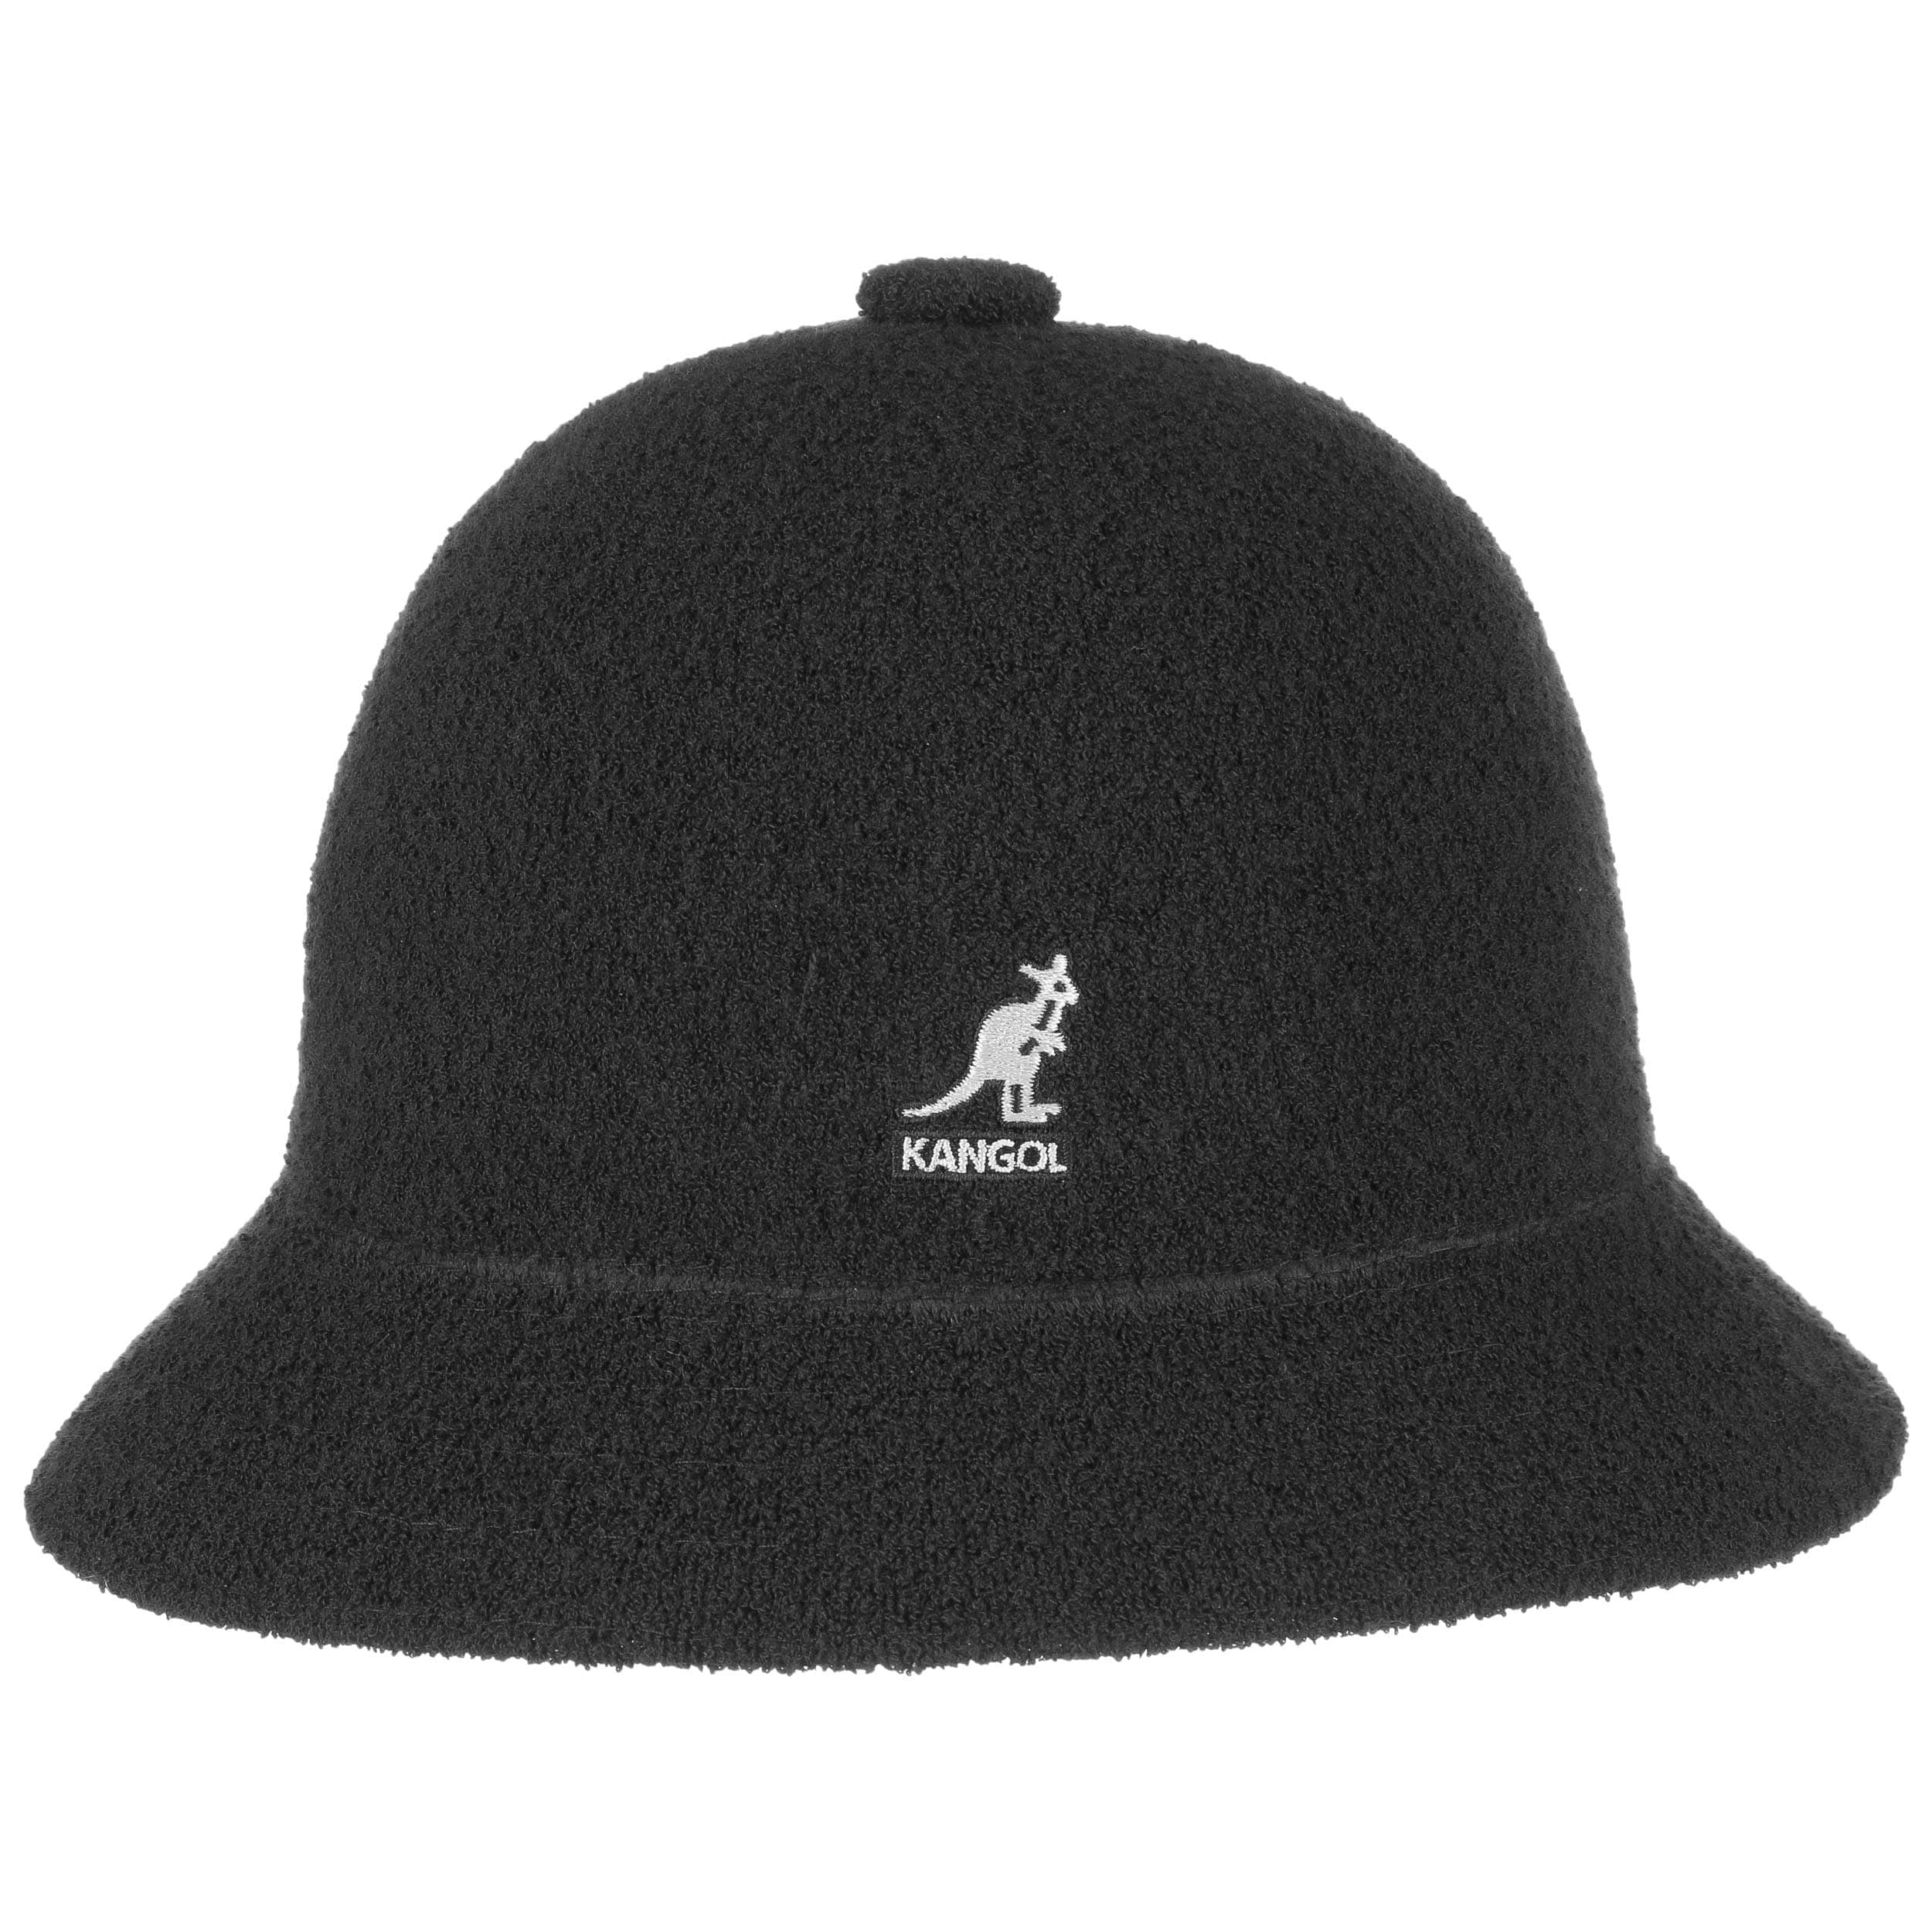 41533859 Bermuda Casual Bucket Hat by Kangol - 60,95 £